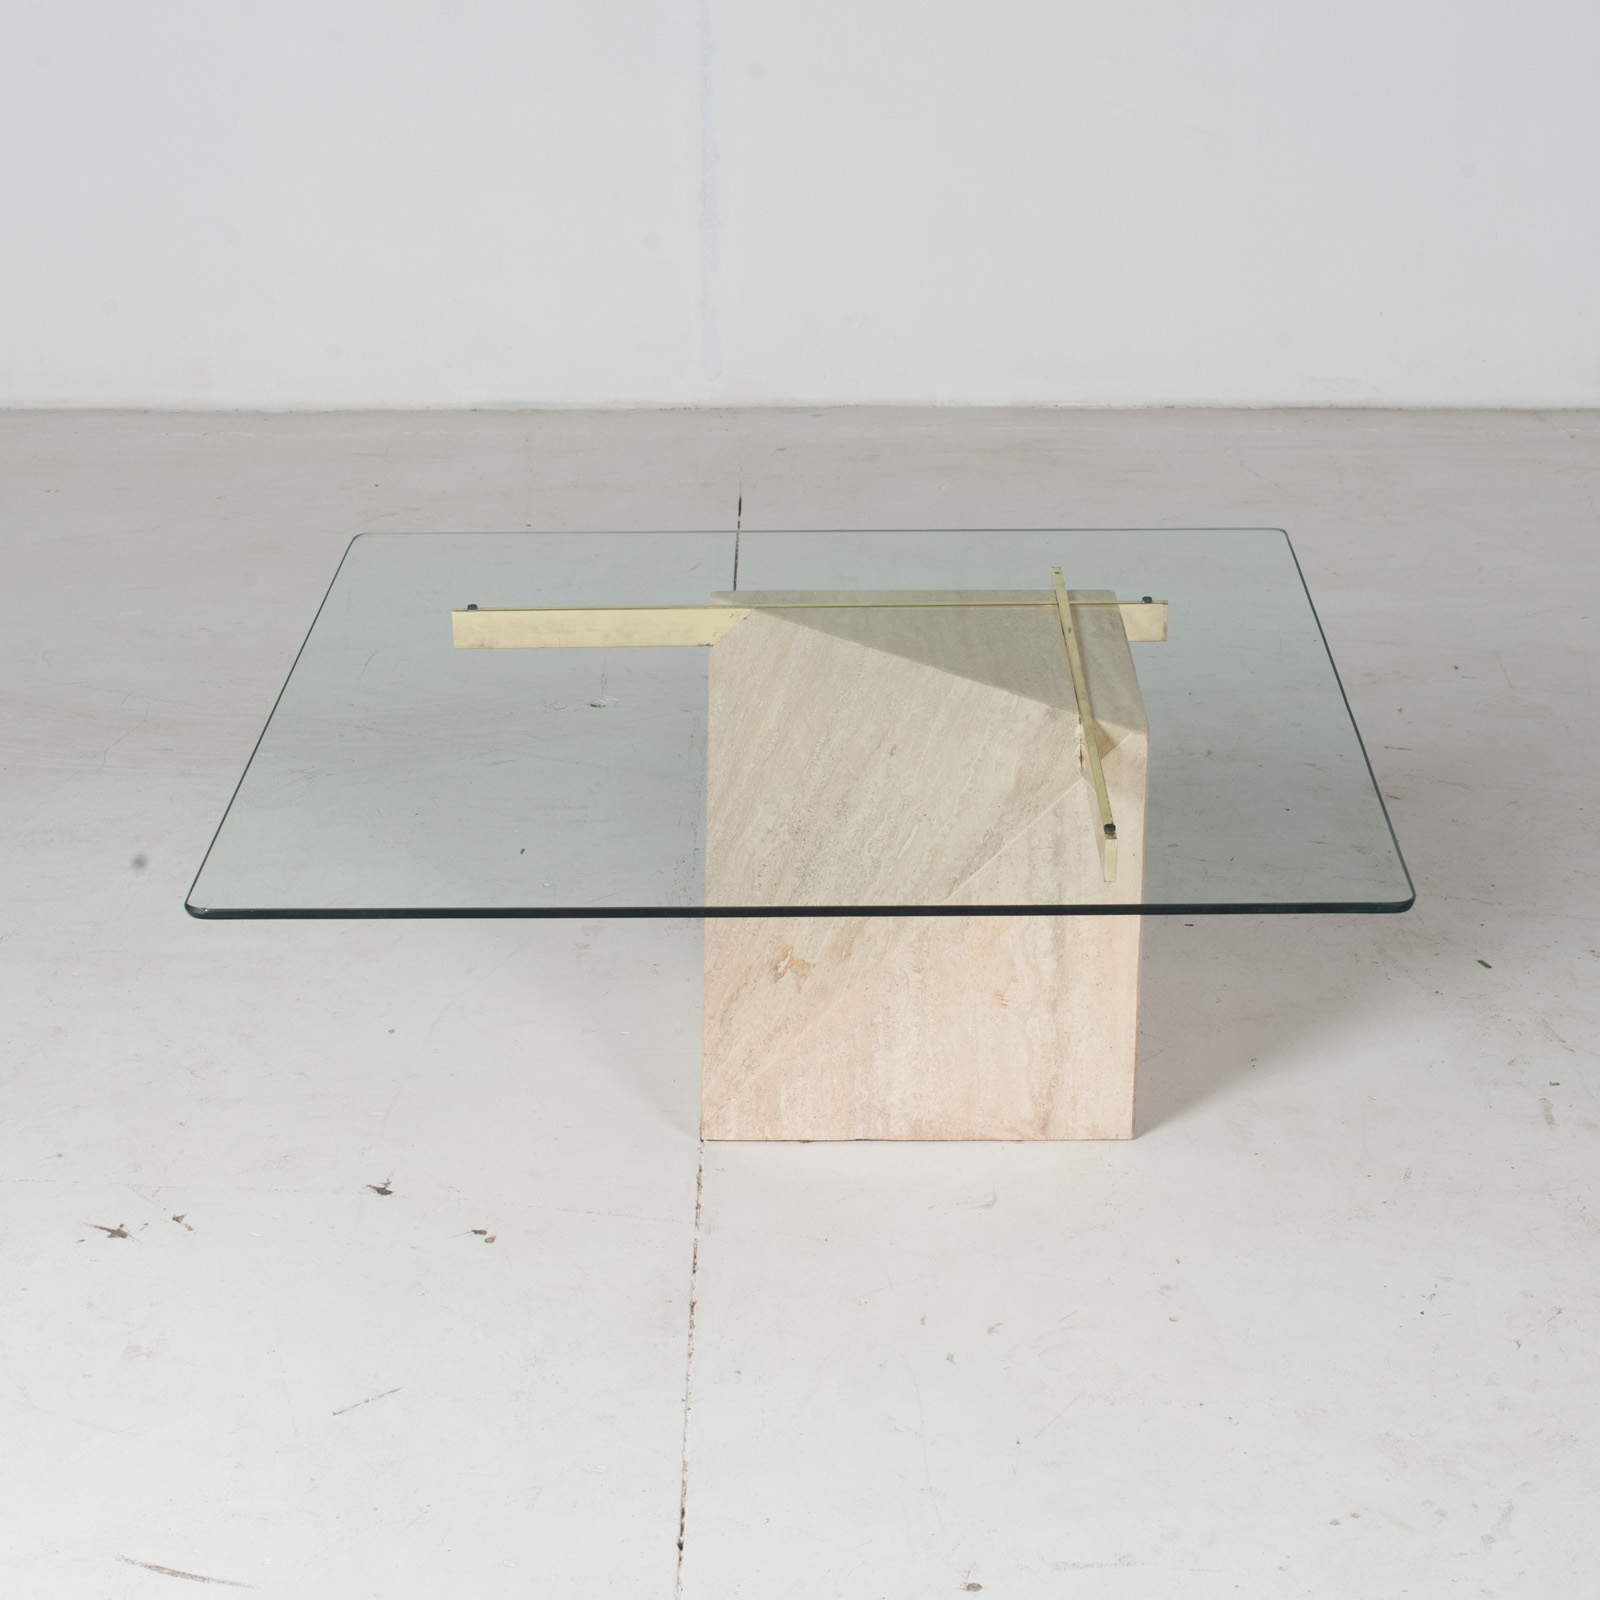 Coffee Table By Artedi In Travertine, Cantilevered Glass And Brass, 1970s, Italy2